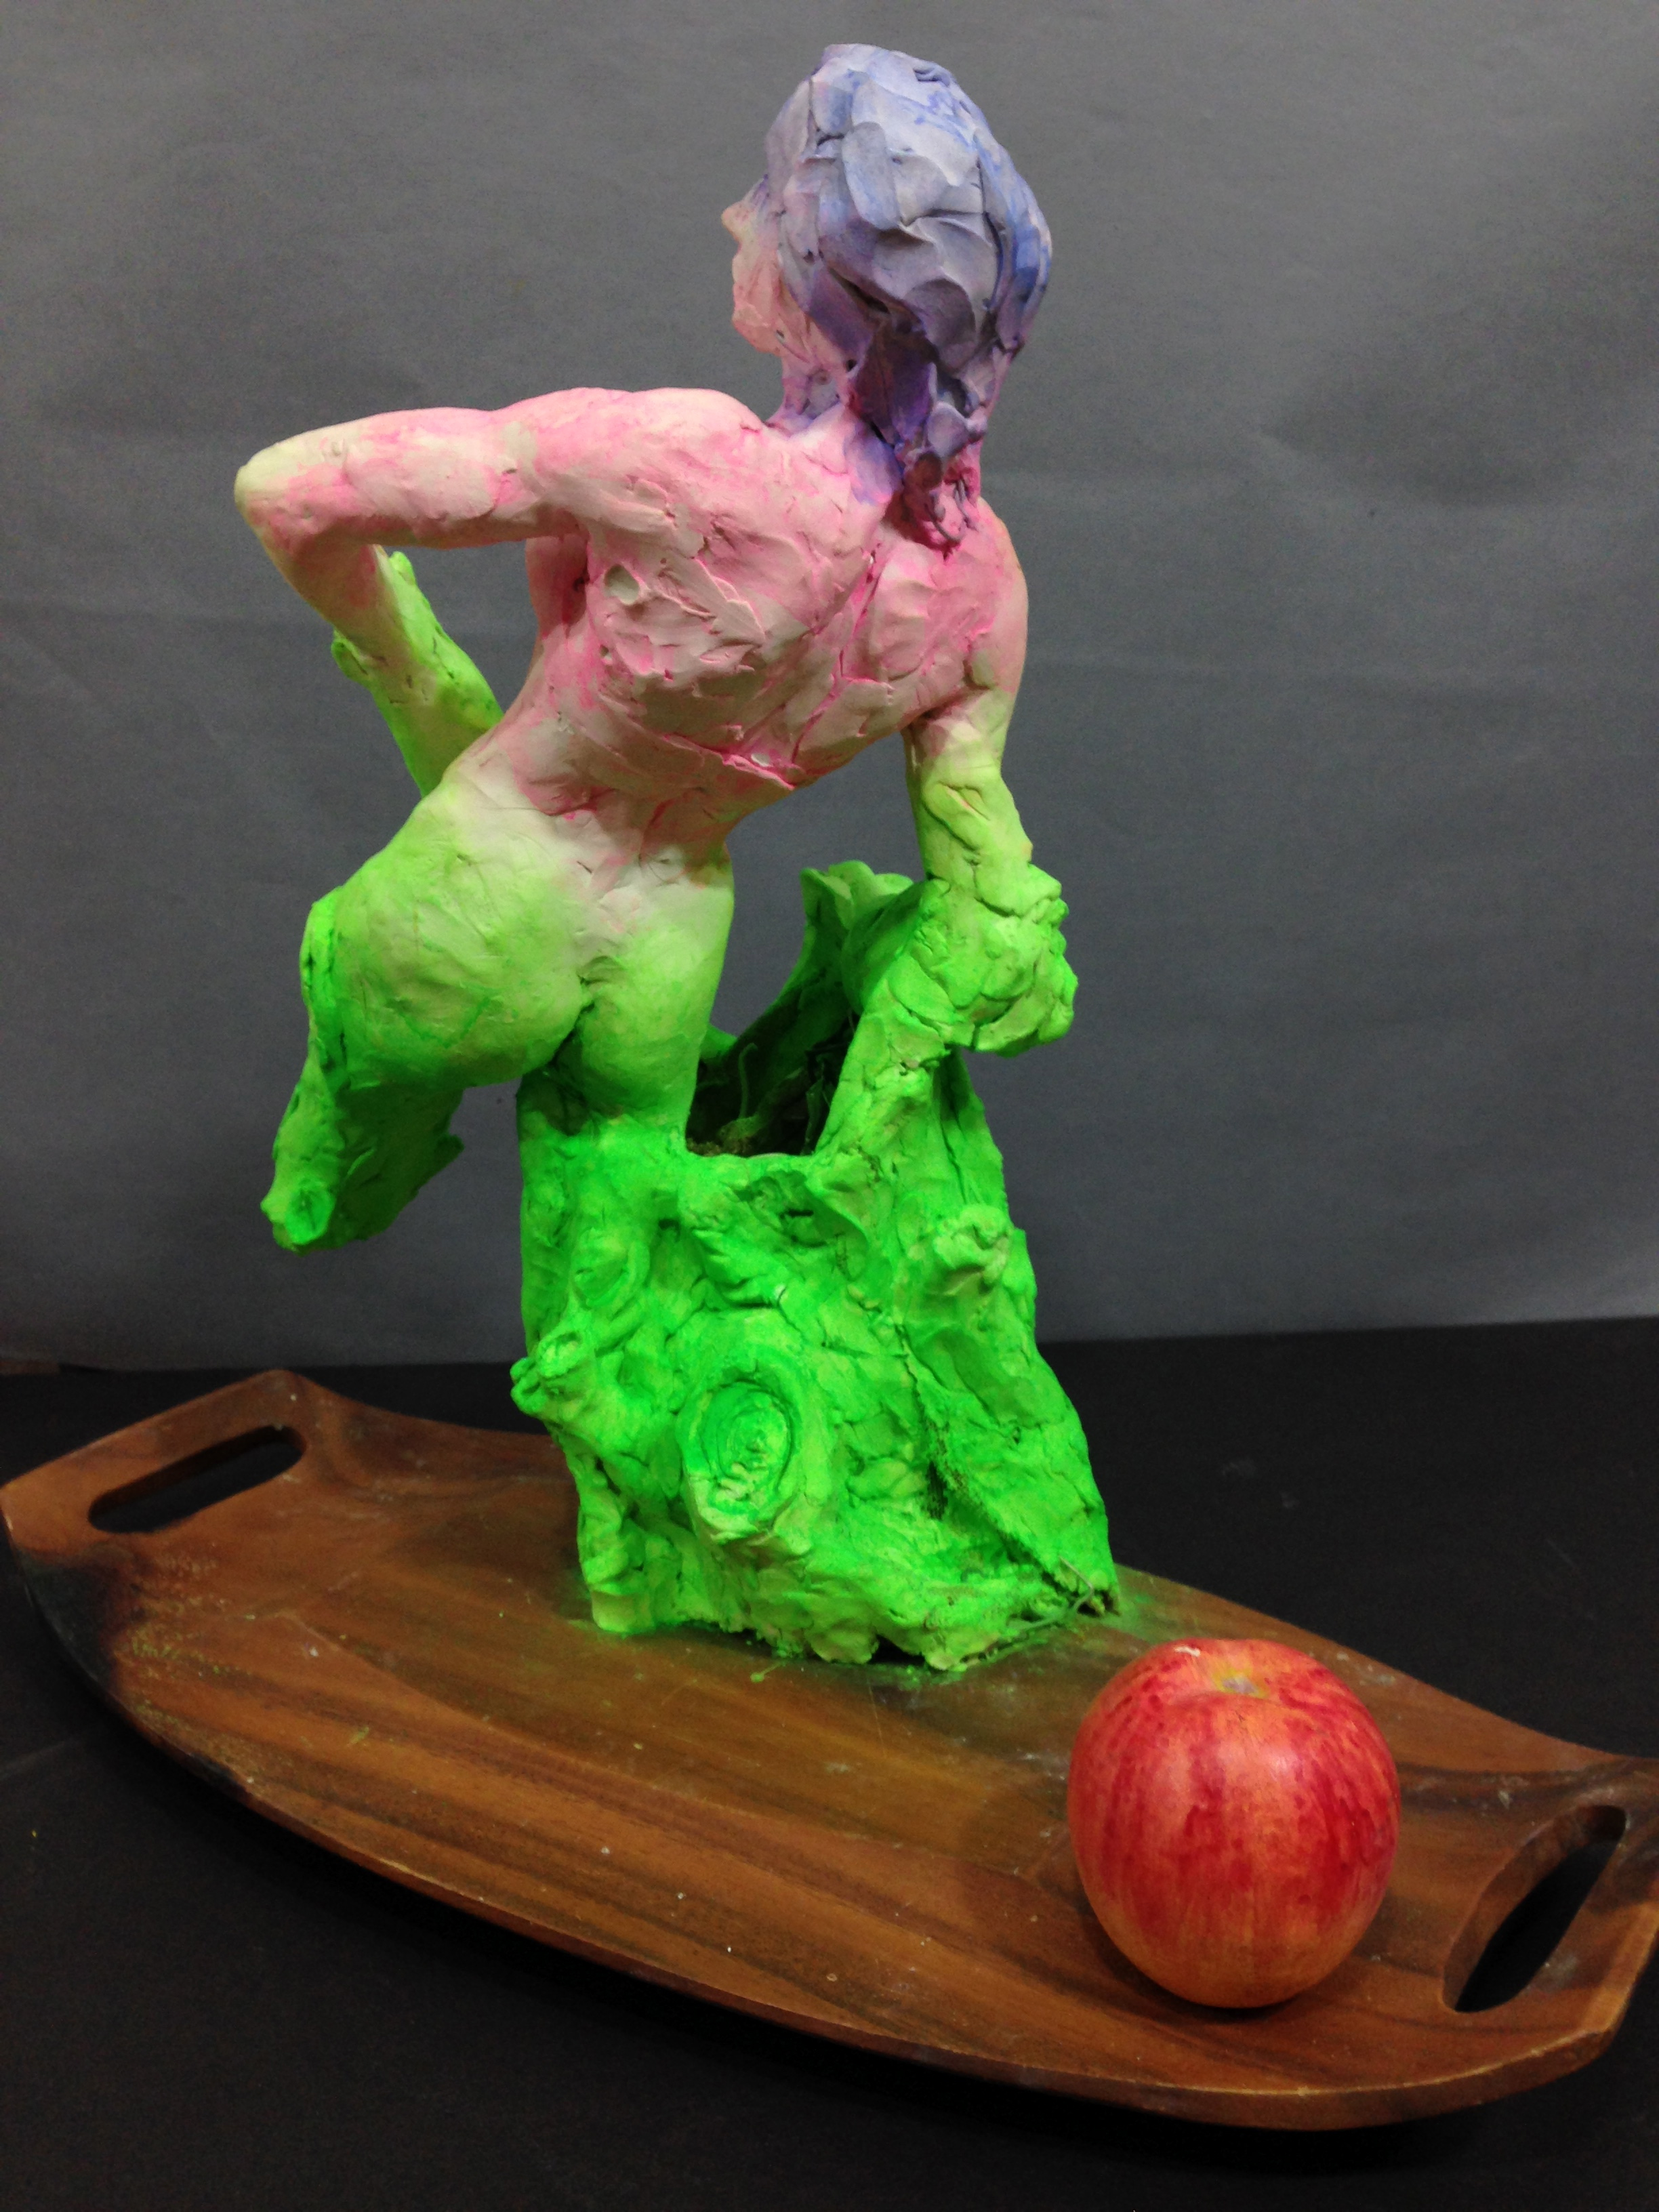 Daphne 2018, pigments, clay, faux painted apple on wood tray plinth